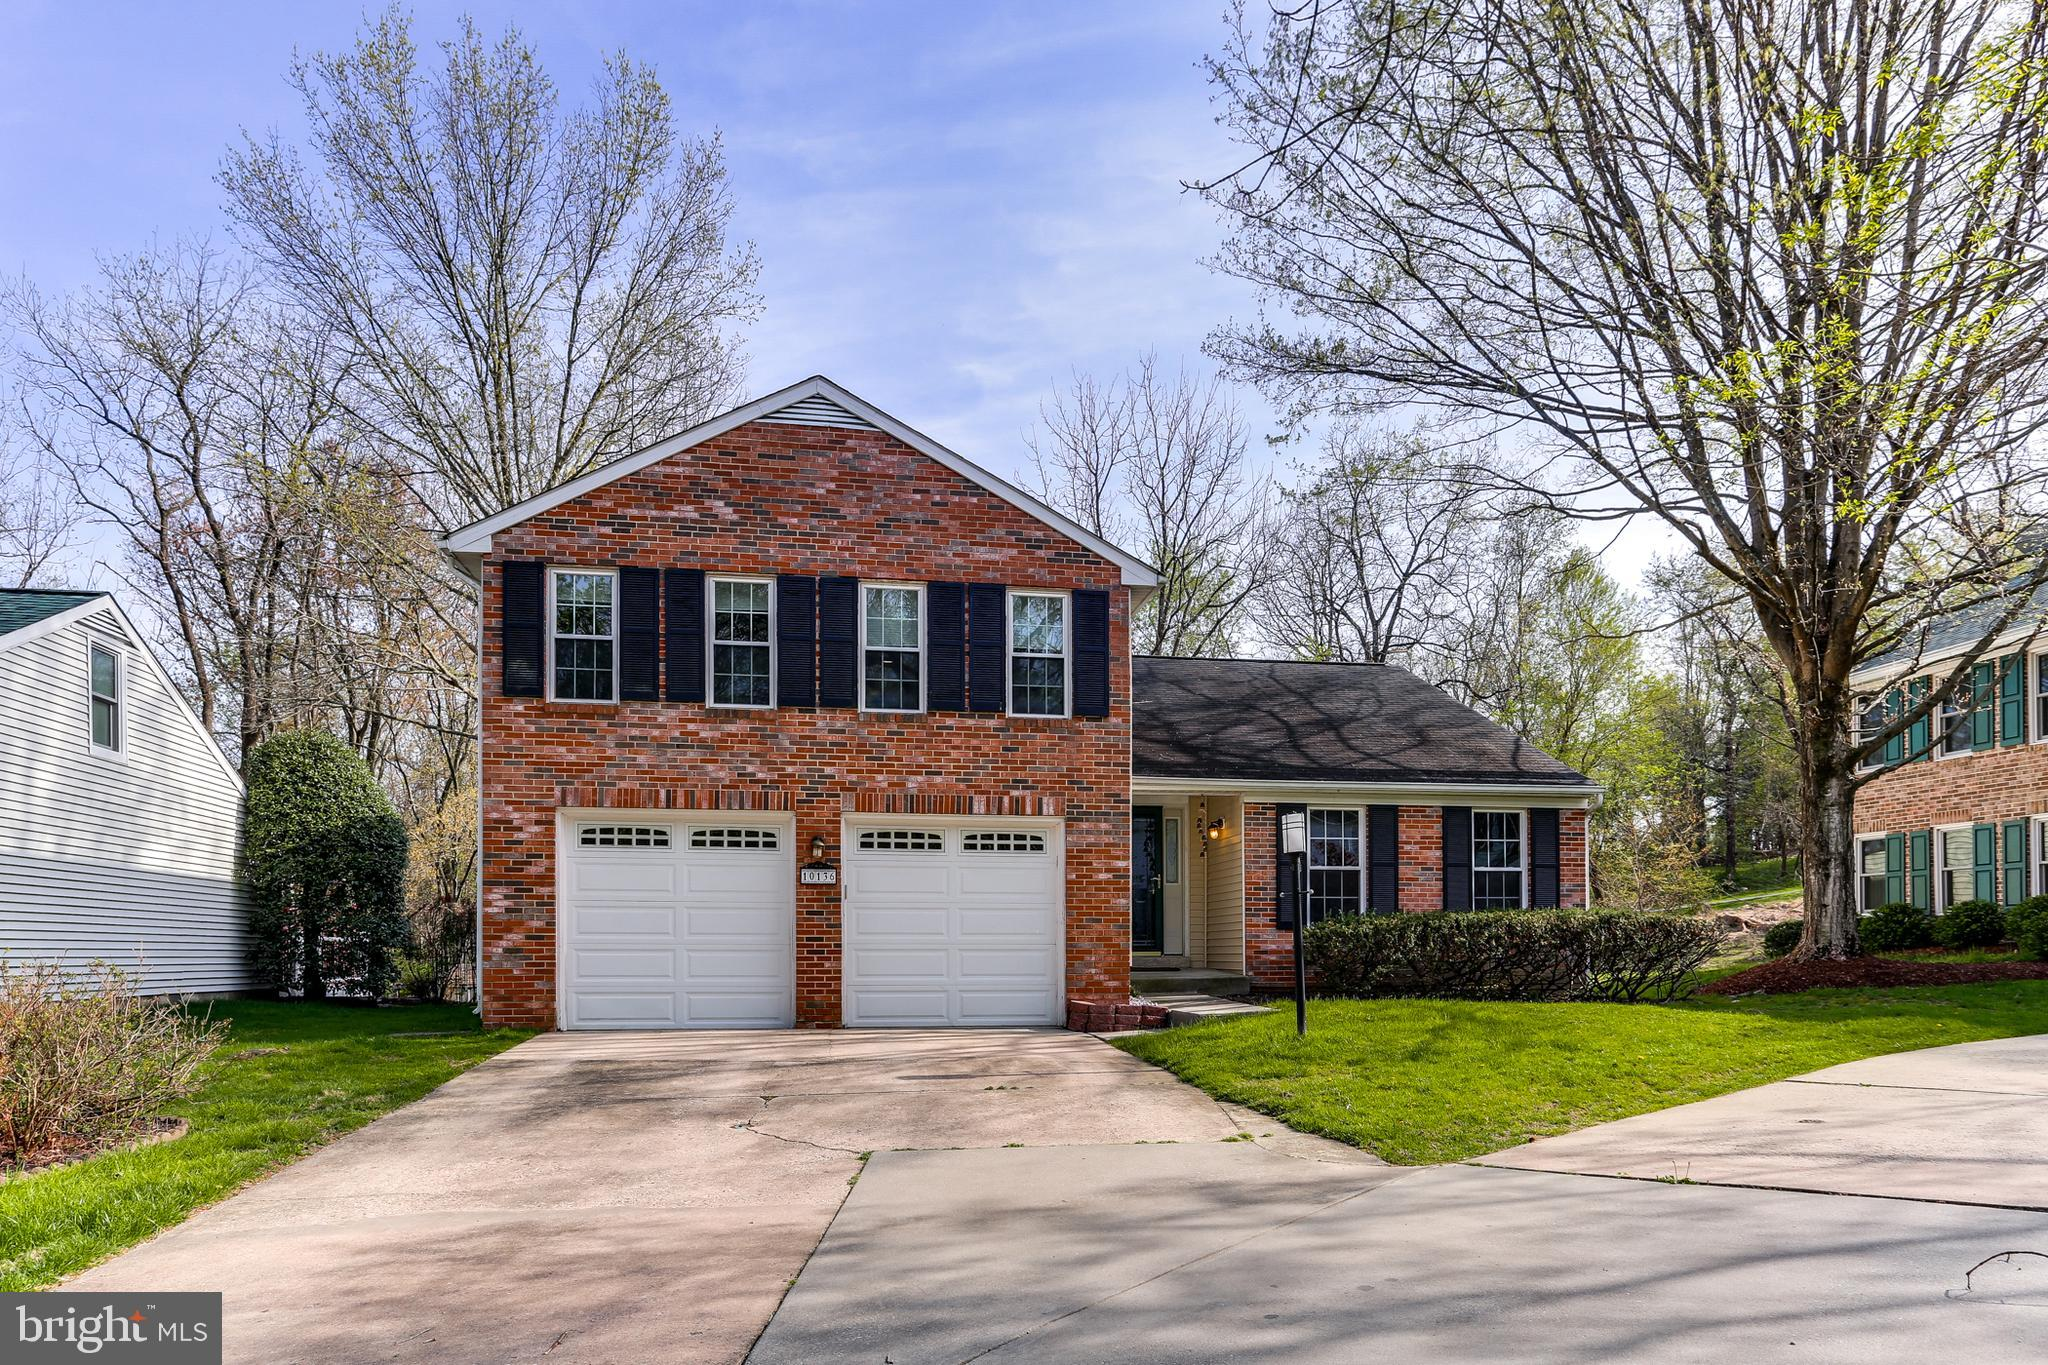 10136 ROVEOUT LANE, COLUMBIA, MD 21046